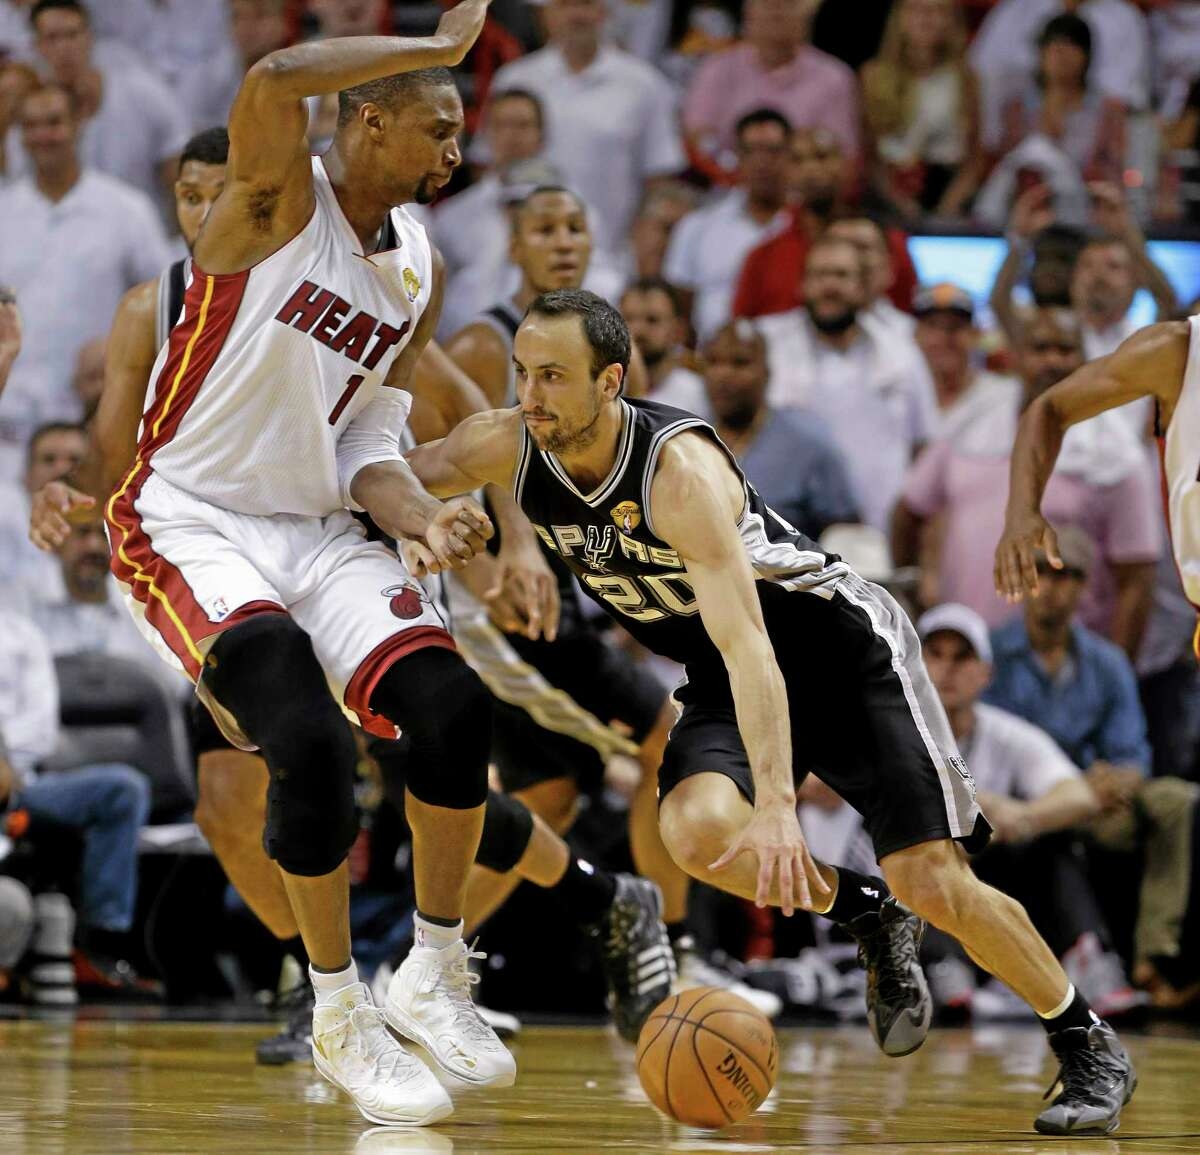 San Antonio Spurs guard Manu Ginobili (20) dribbles past Miami Heat center Chris Bosh (1) during the second half in Game 4 of the NBA Finals.